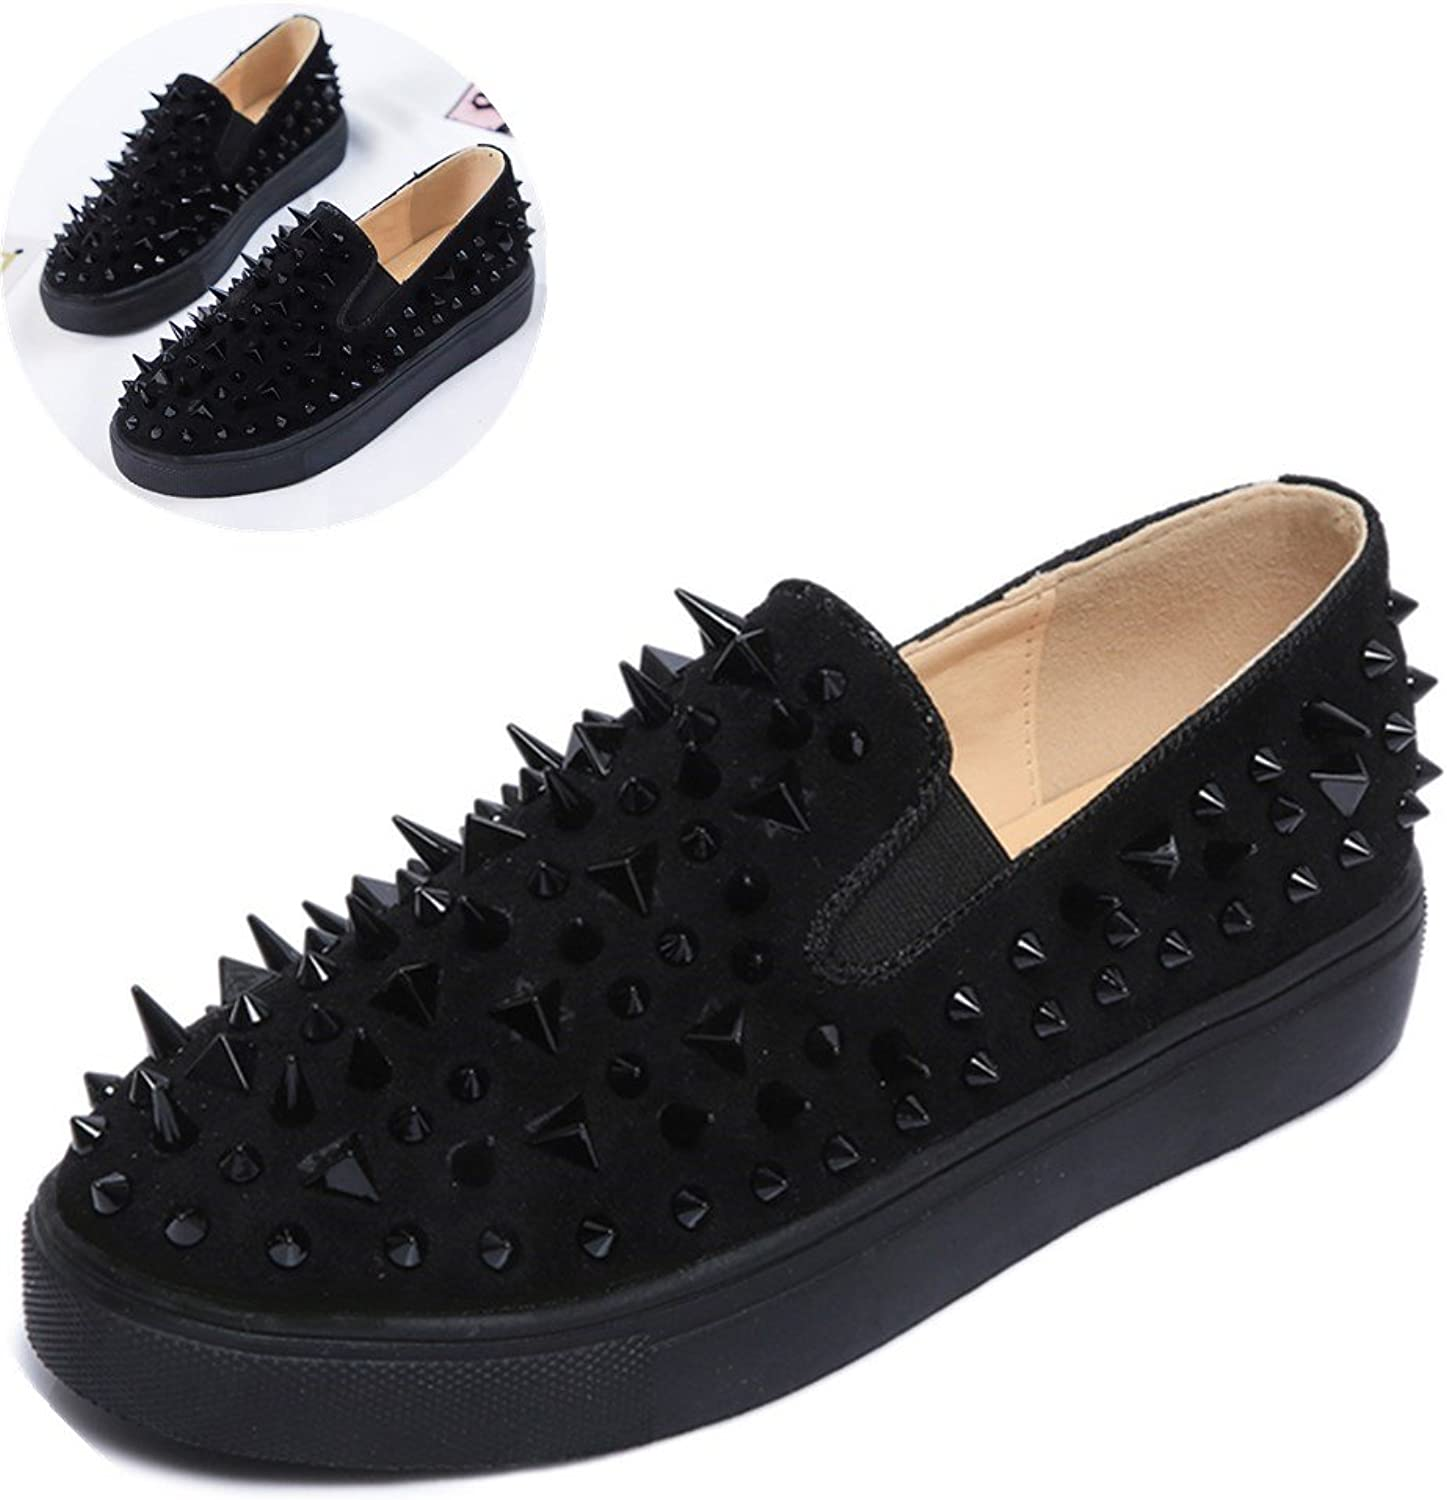 An Meng Xin Ling Fashion Flats for Women Spring Round Toe Slip On Loafers Suede Leather Rivet shoes Black Red gold